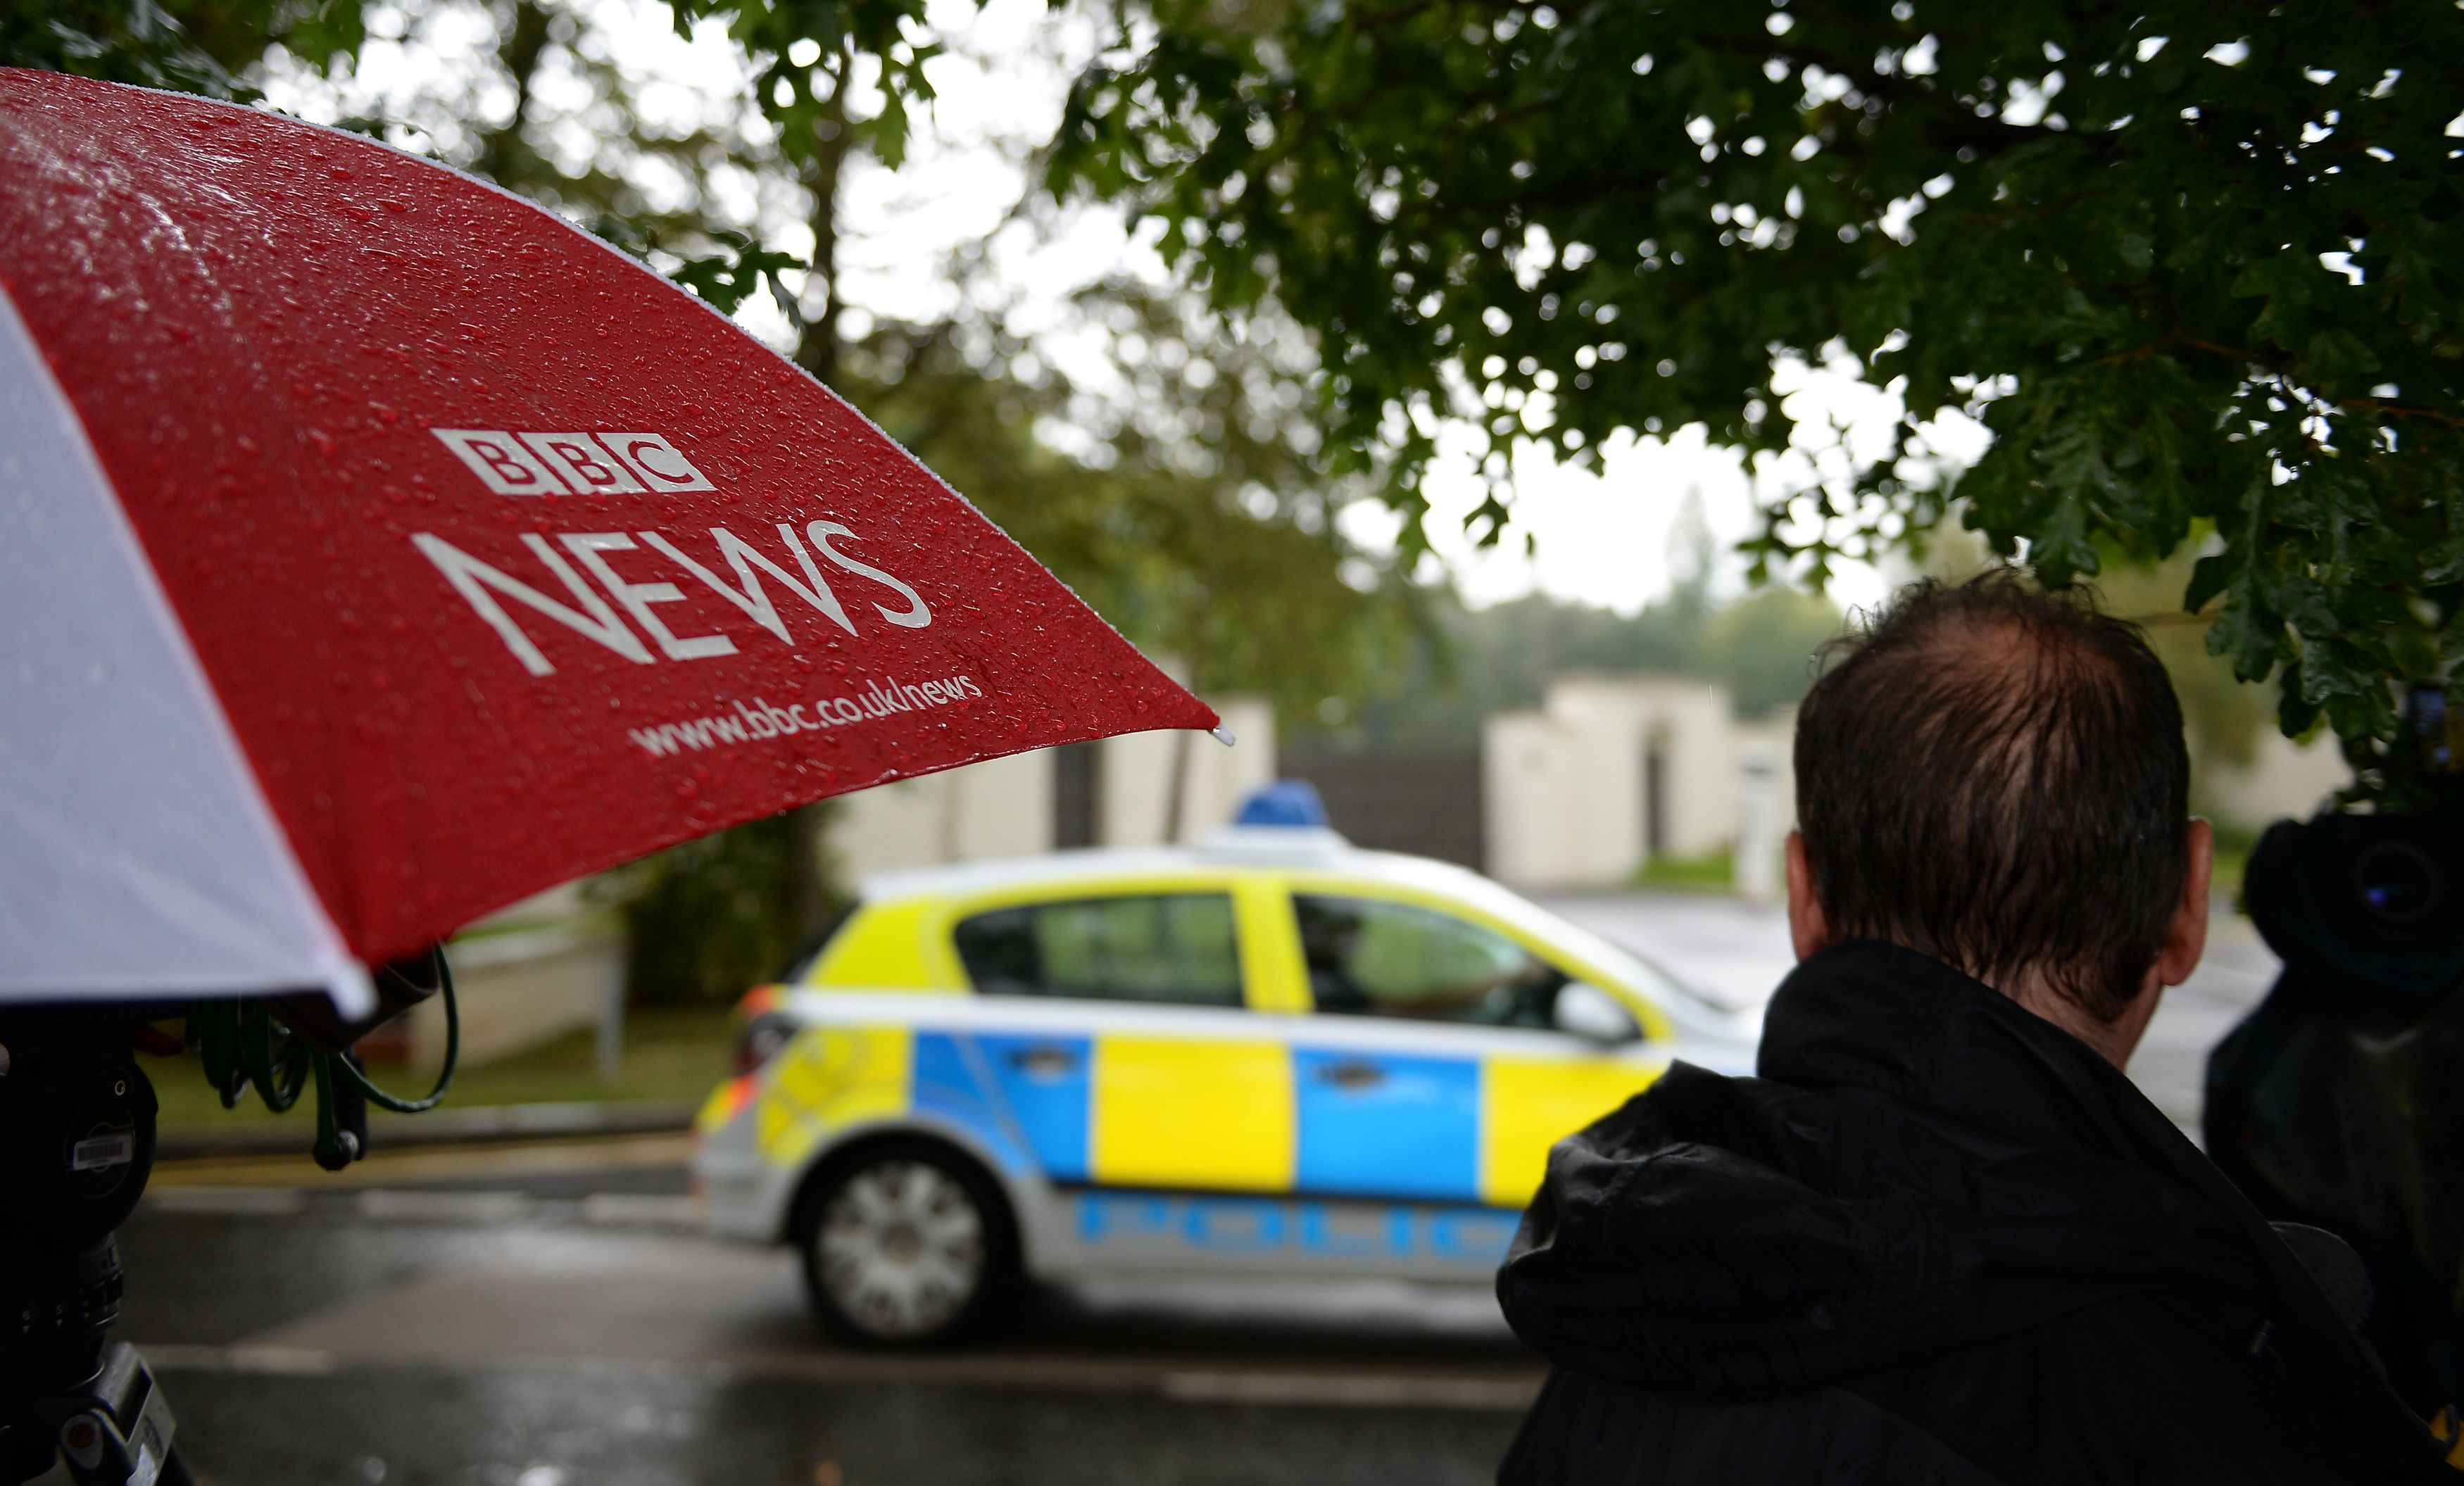 South Yorkshire Police searched the apartment in Sunningdale, Berkshire (Andrew Matthews/PA)